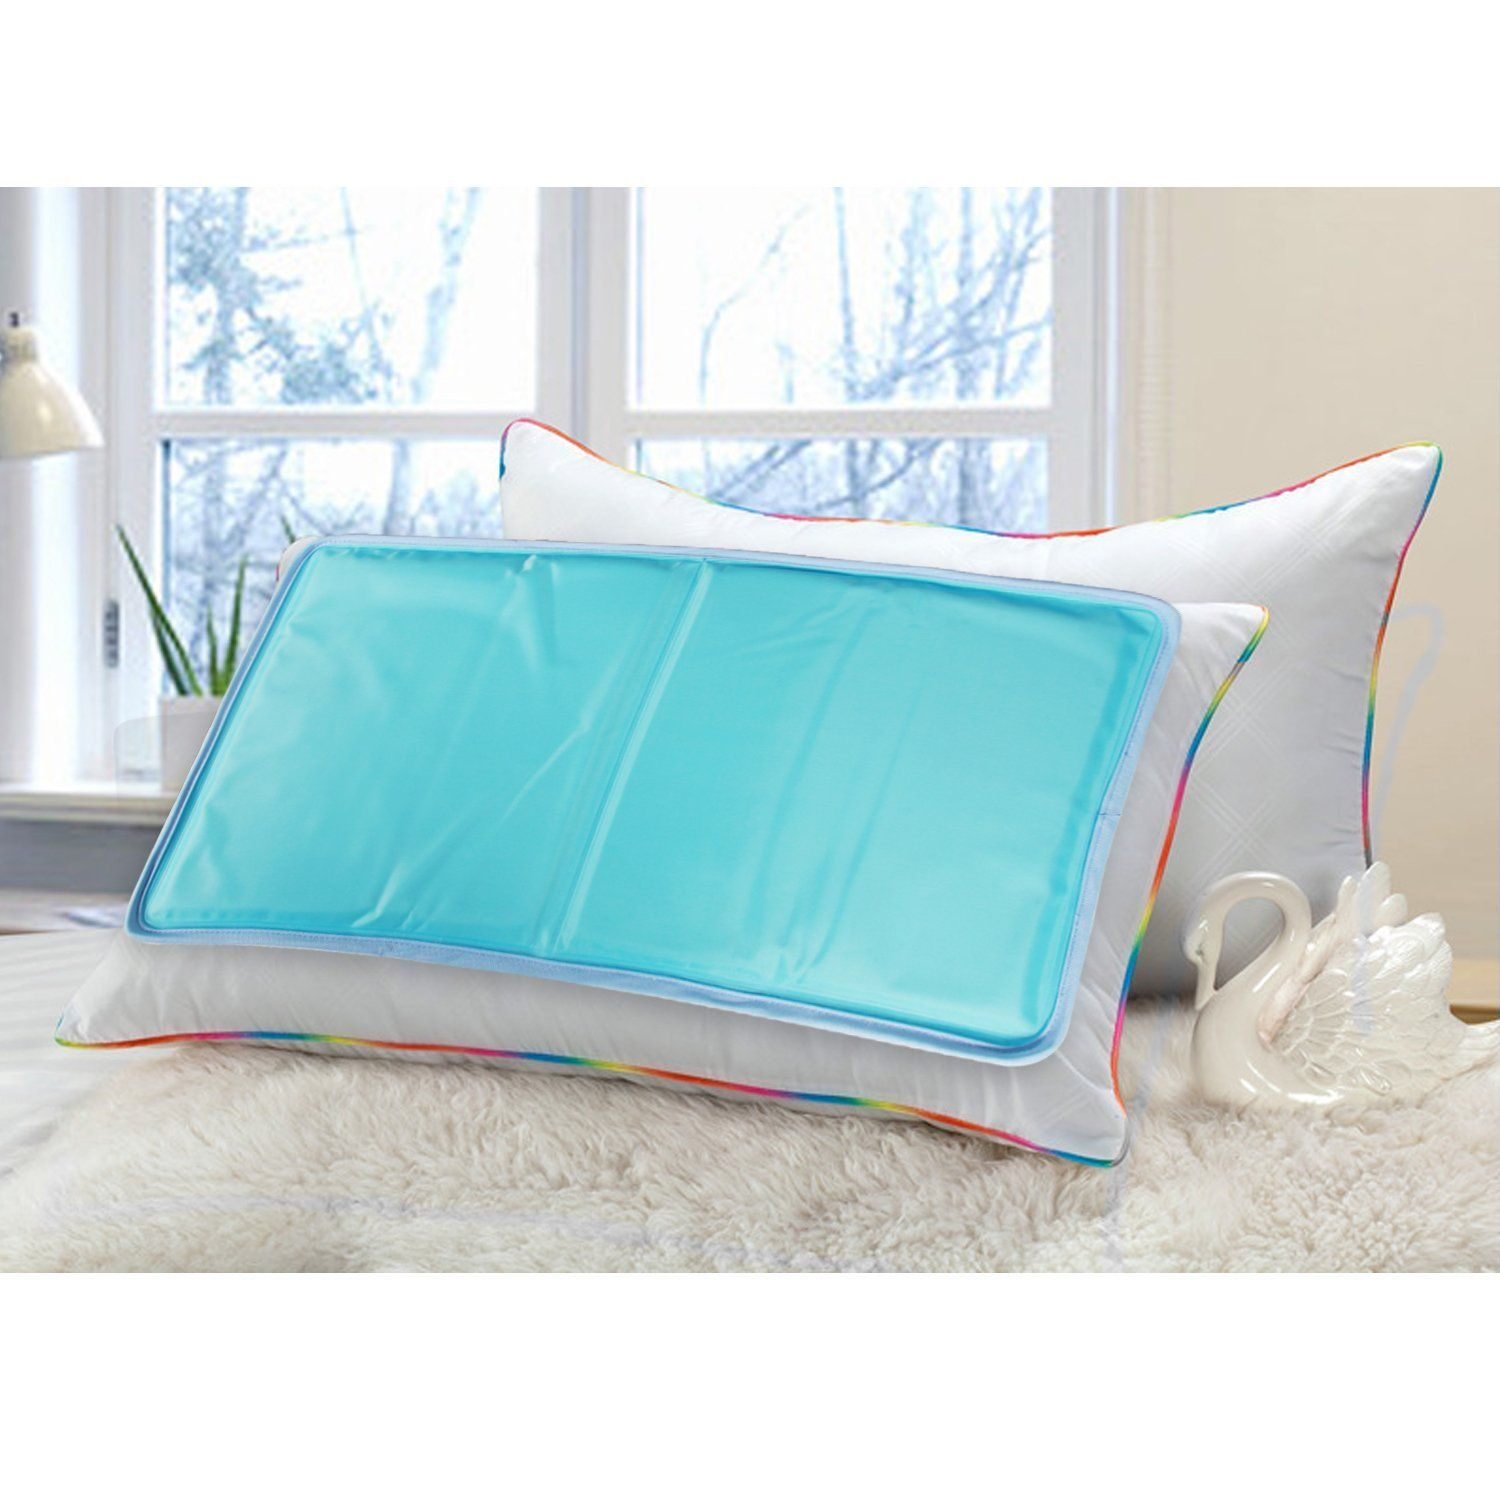 Augymer Cooling Pillow Mat 11 8 X 22 Chilly Gel Mat Reduces